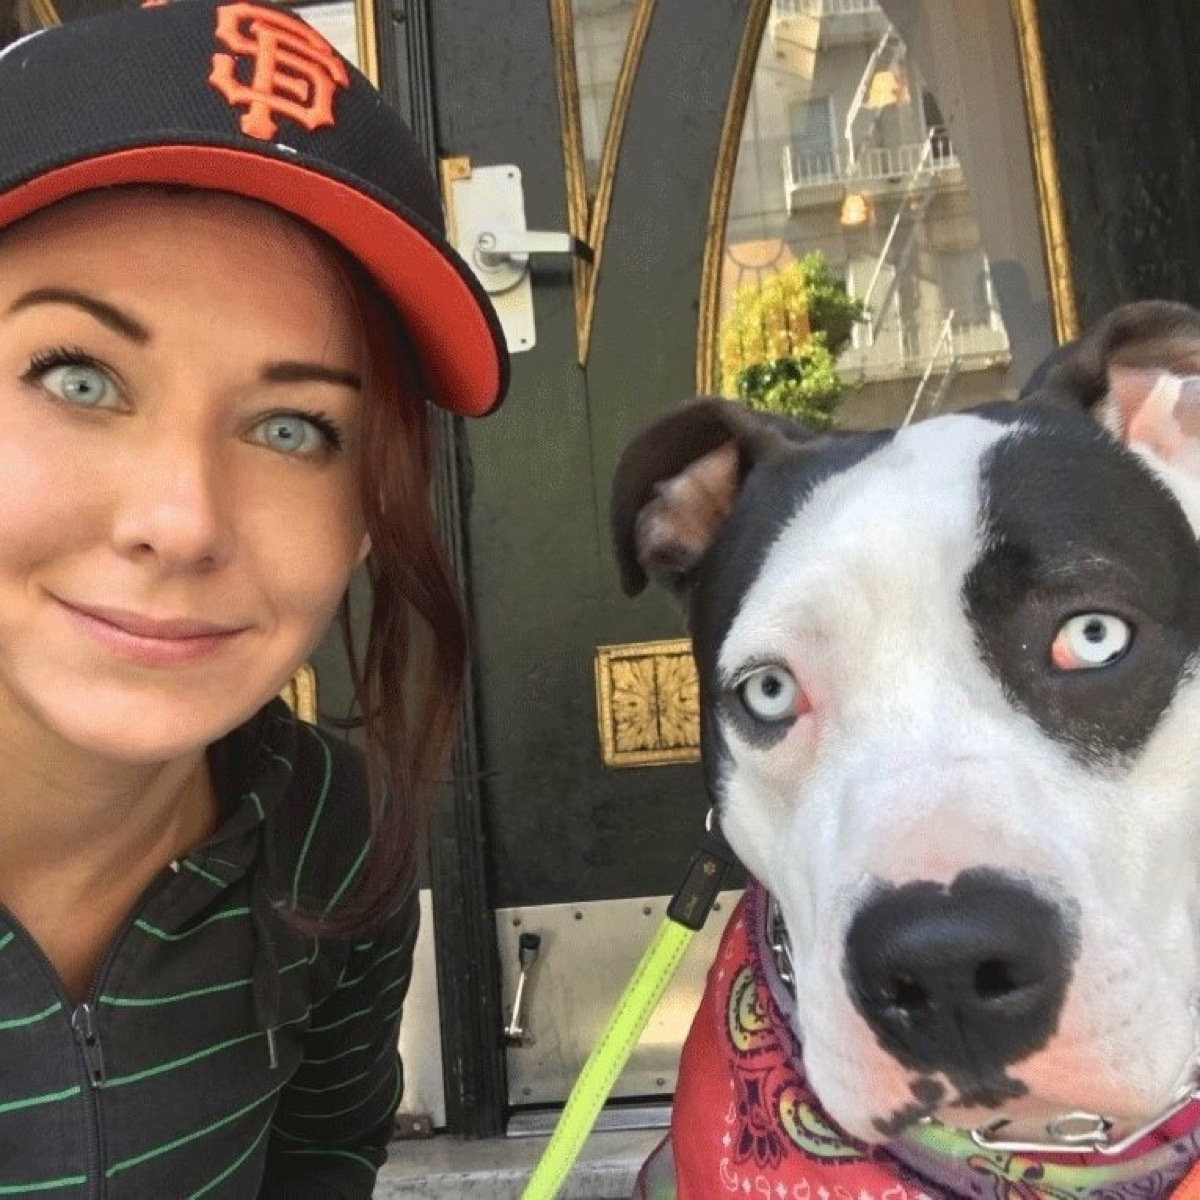 blue eyed woman has same exact eyes as dog, dog and owner twins